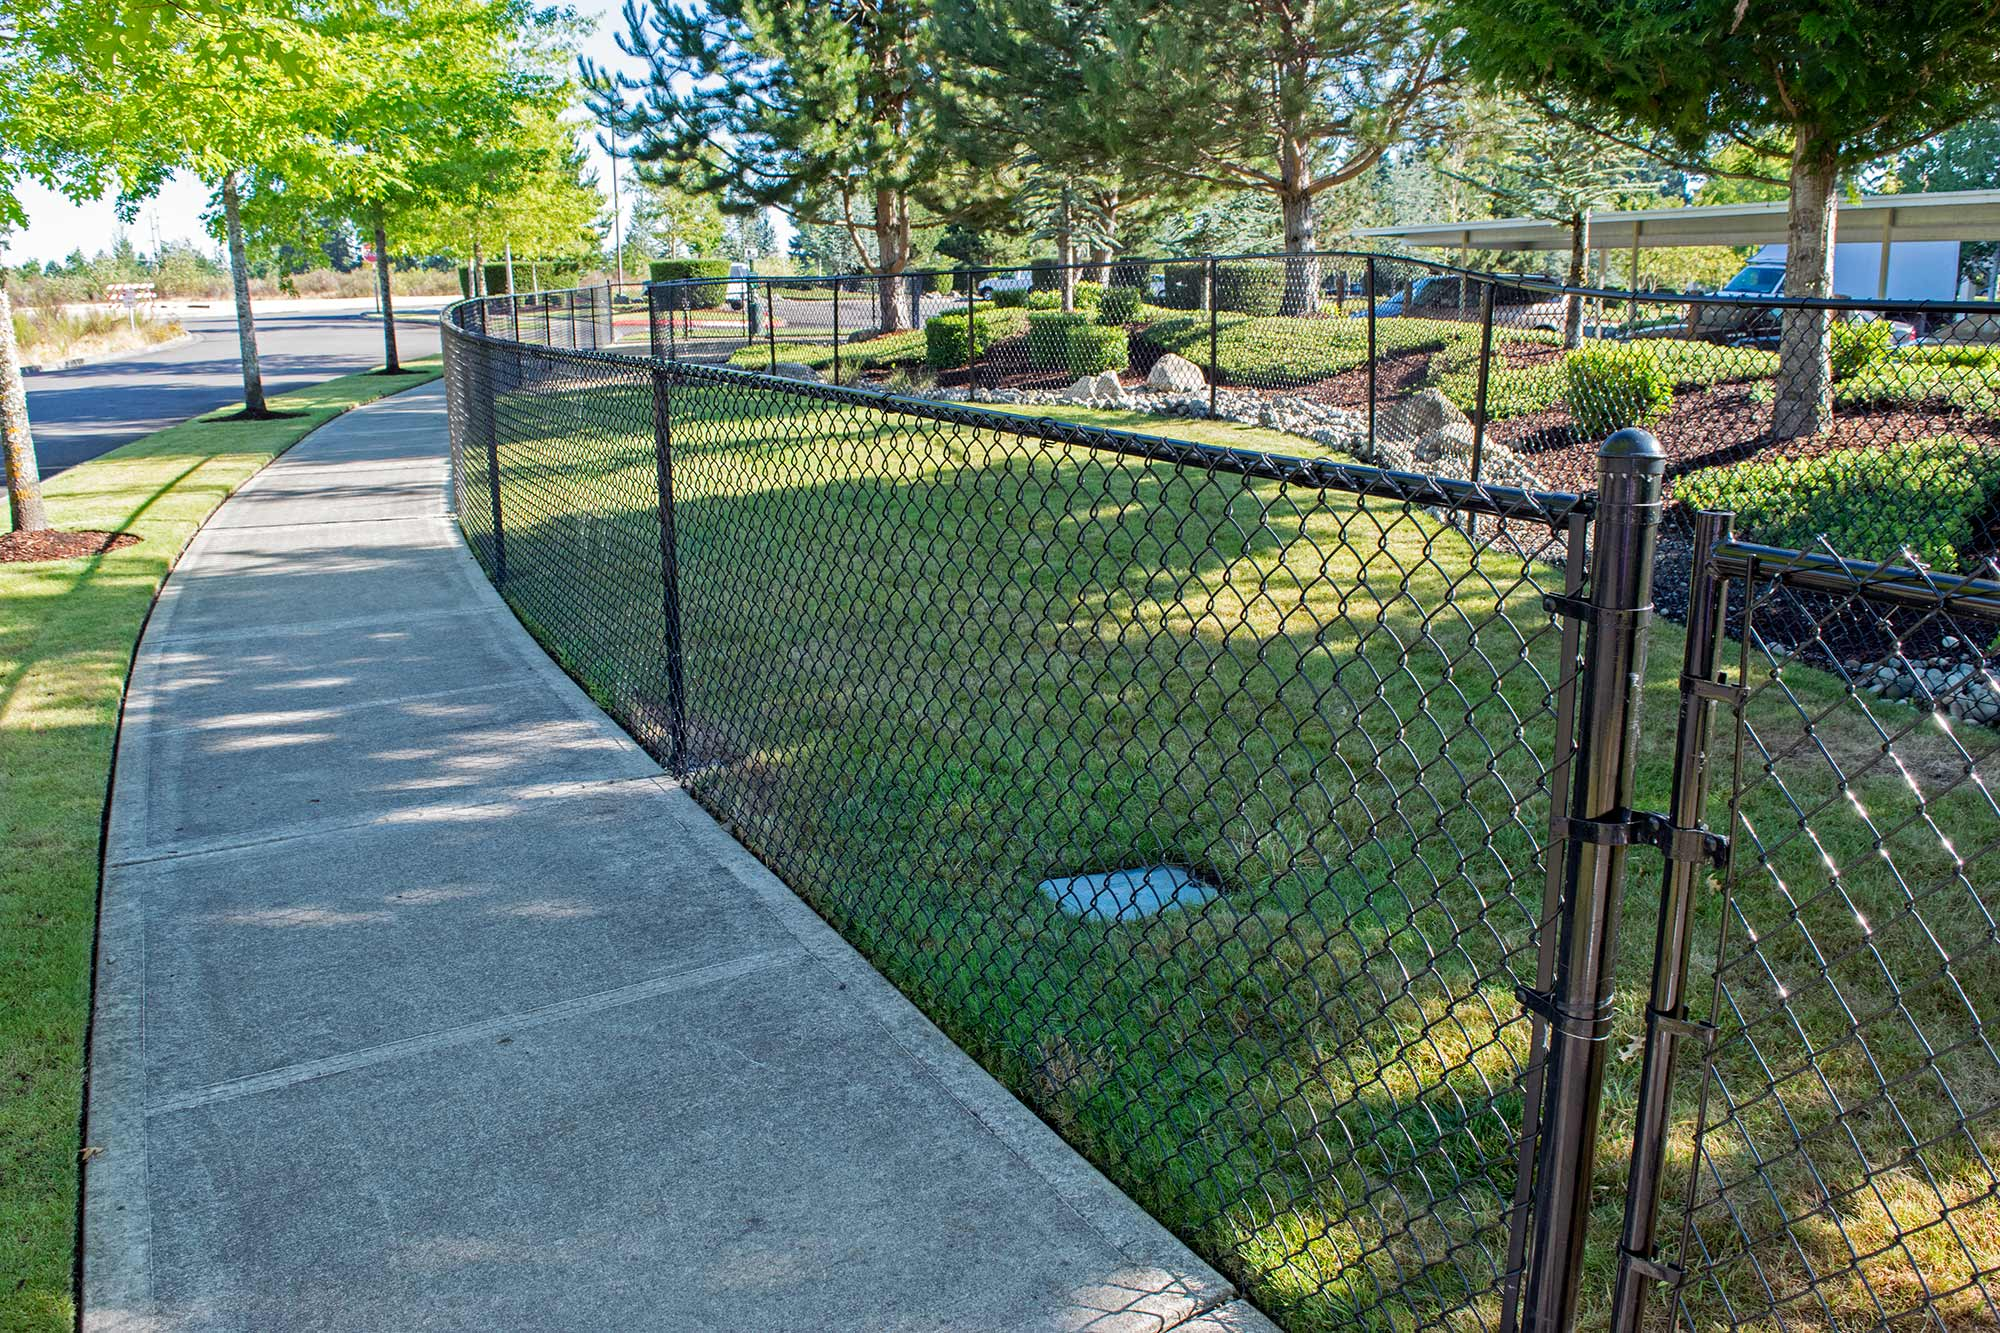 This beautiful, gated off-leash dog area runs adjacent to the sidewalk running through this Dupont retirement community, providing easy access and a safe environment for dogs and their owners.